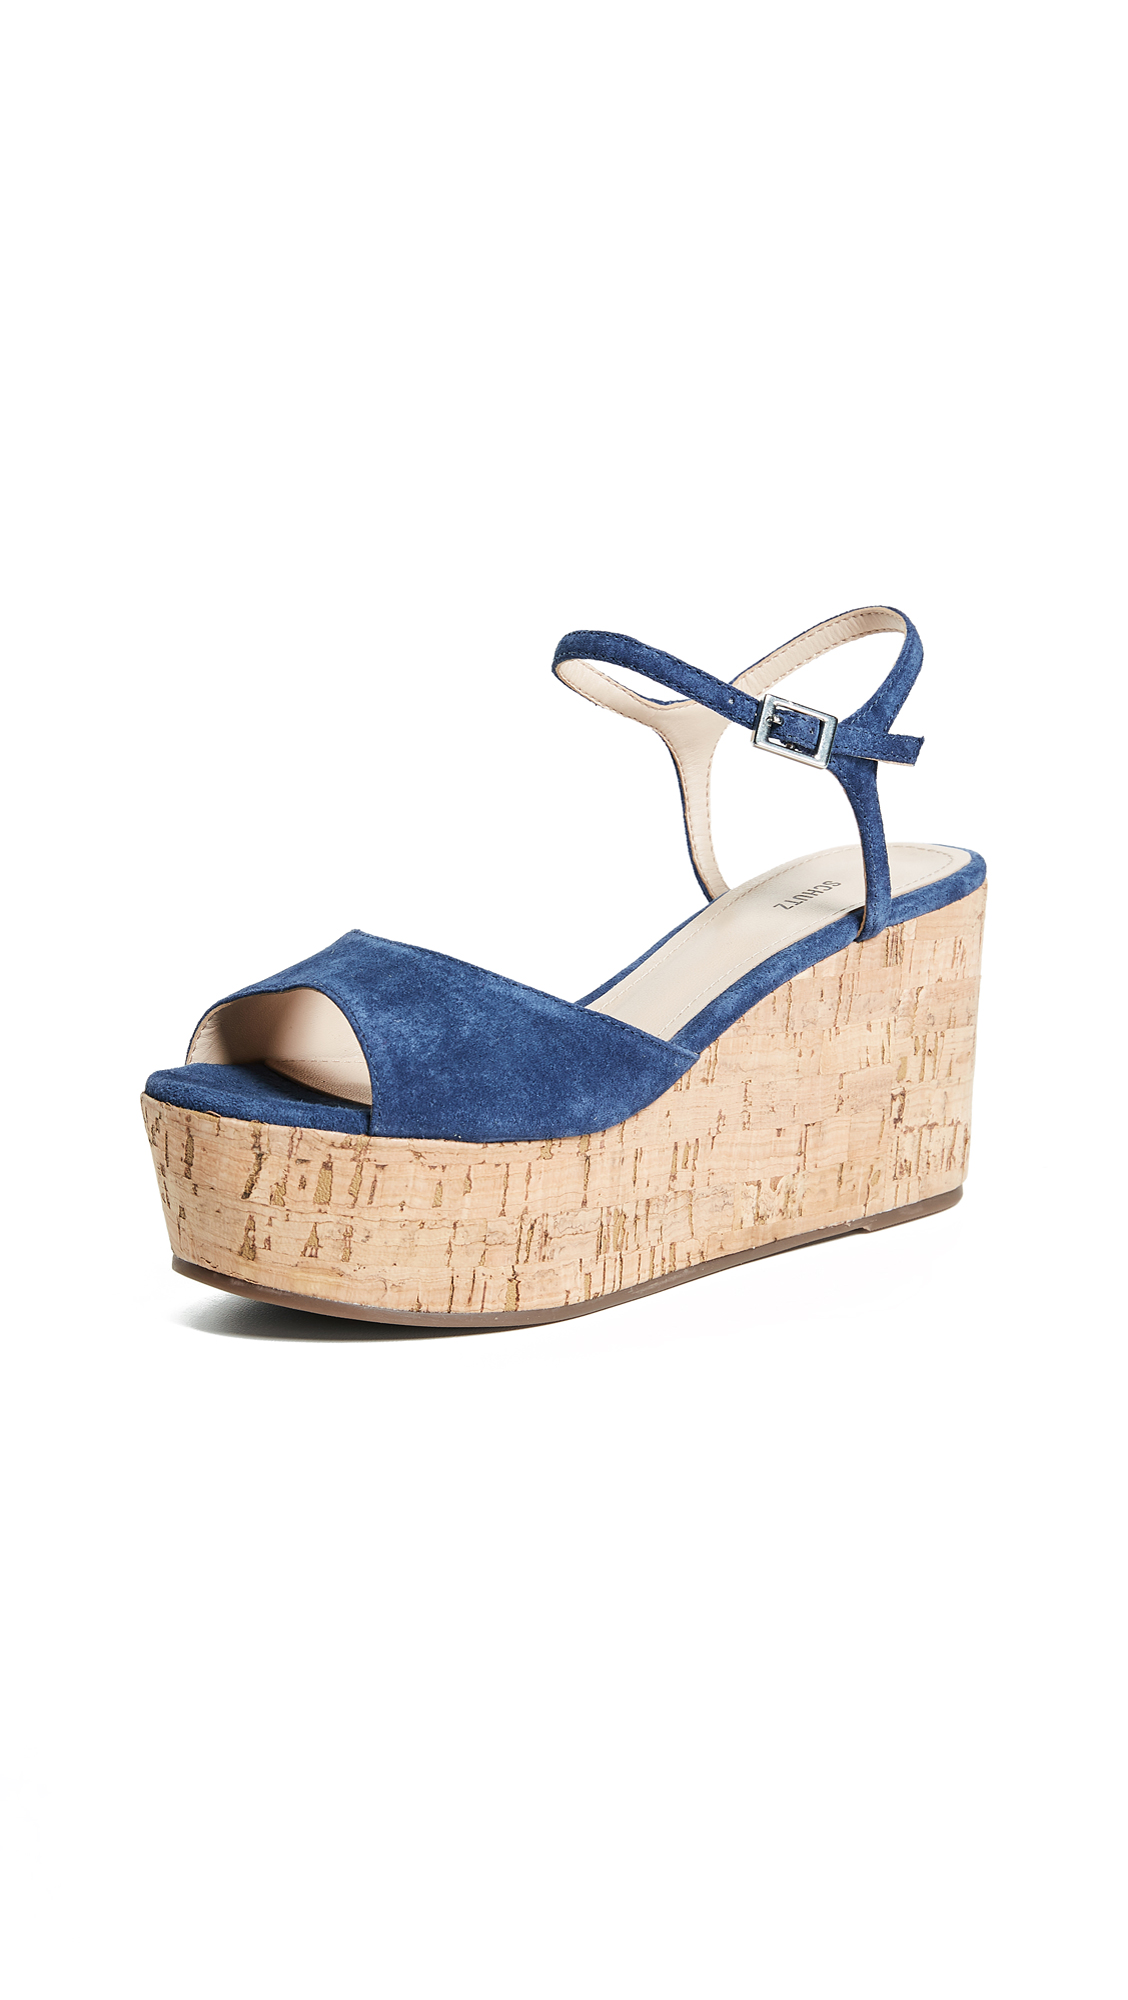 Schutz Heloise Flatforms - Dress Blue